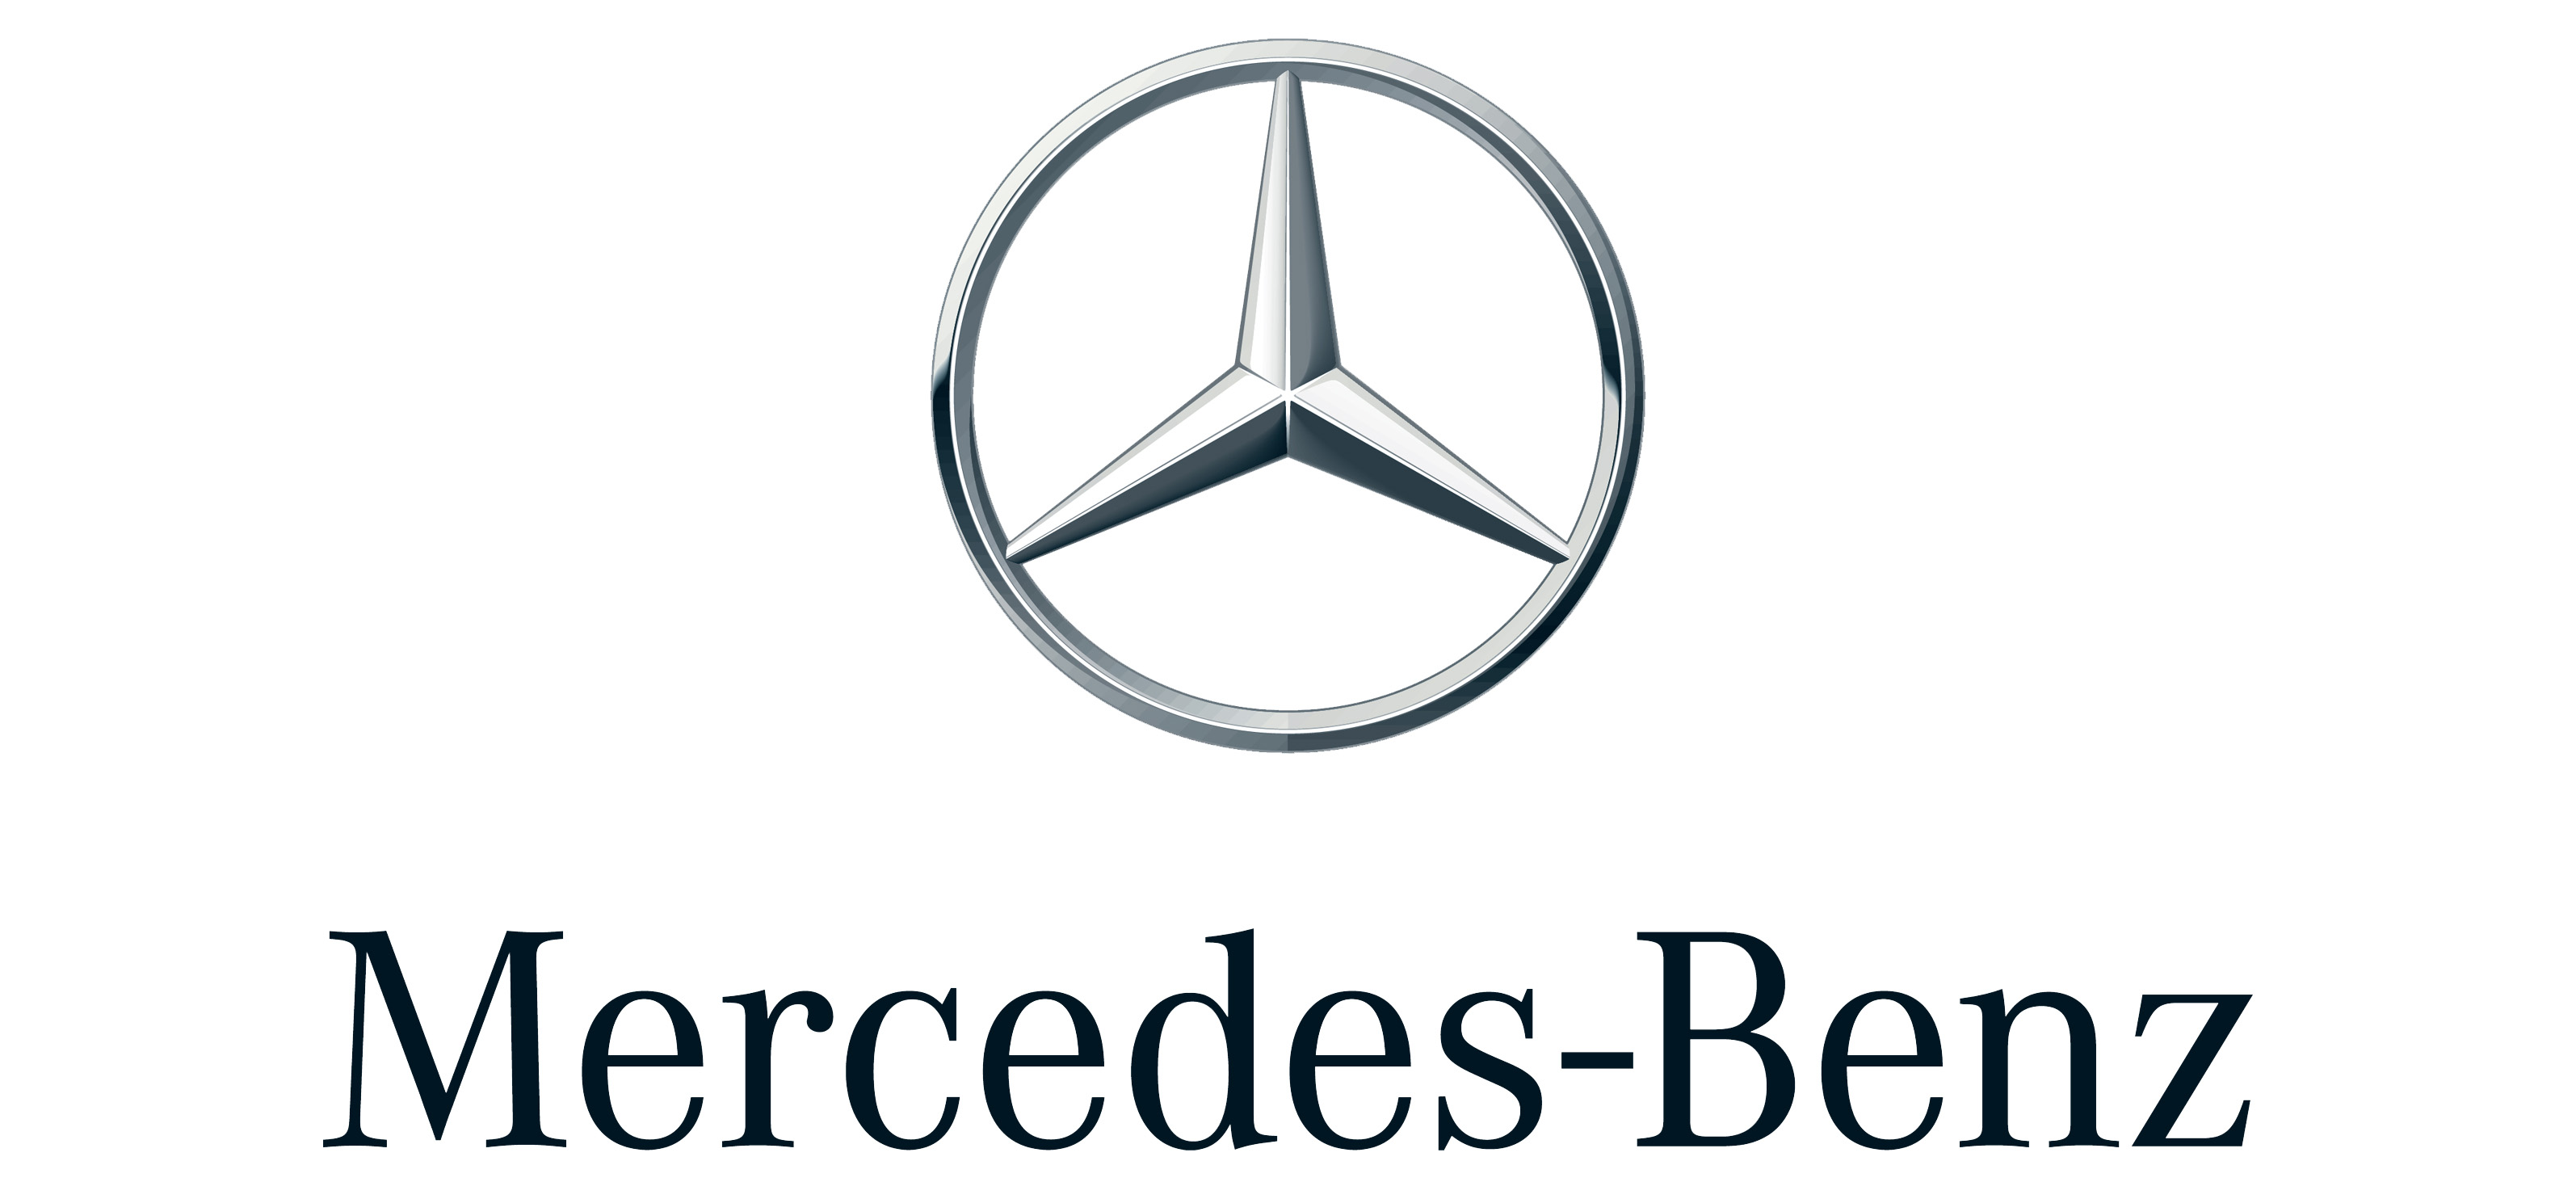 List Of All German Car Brands German Car Manufacturers